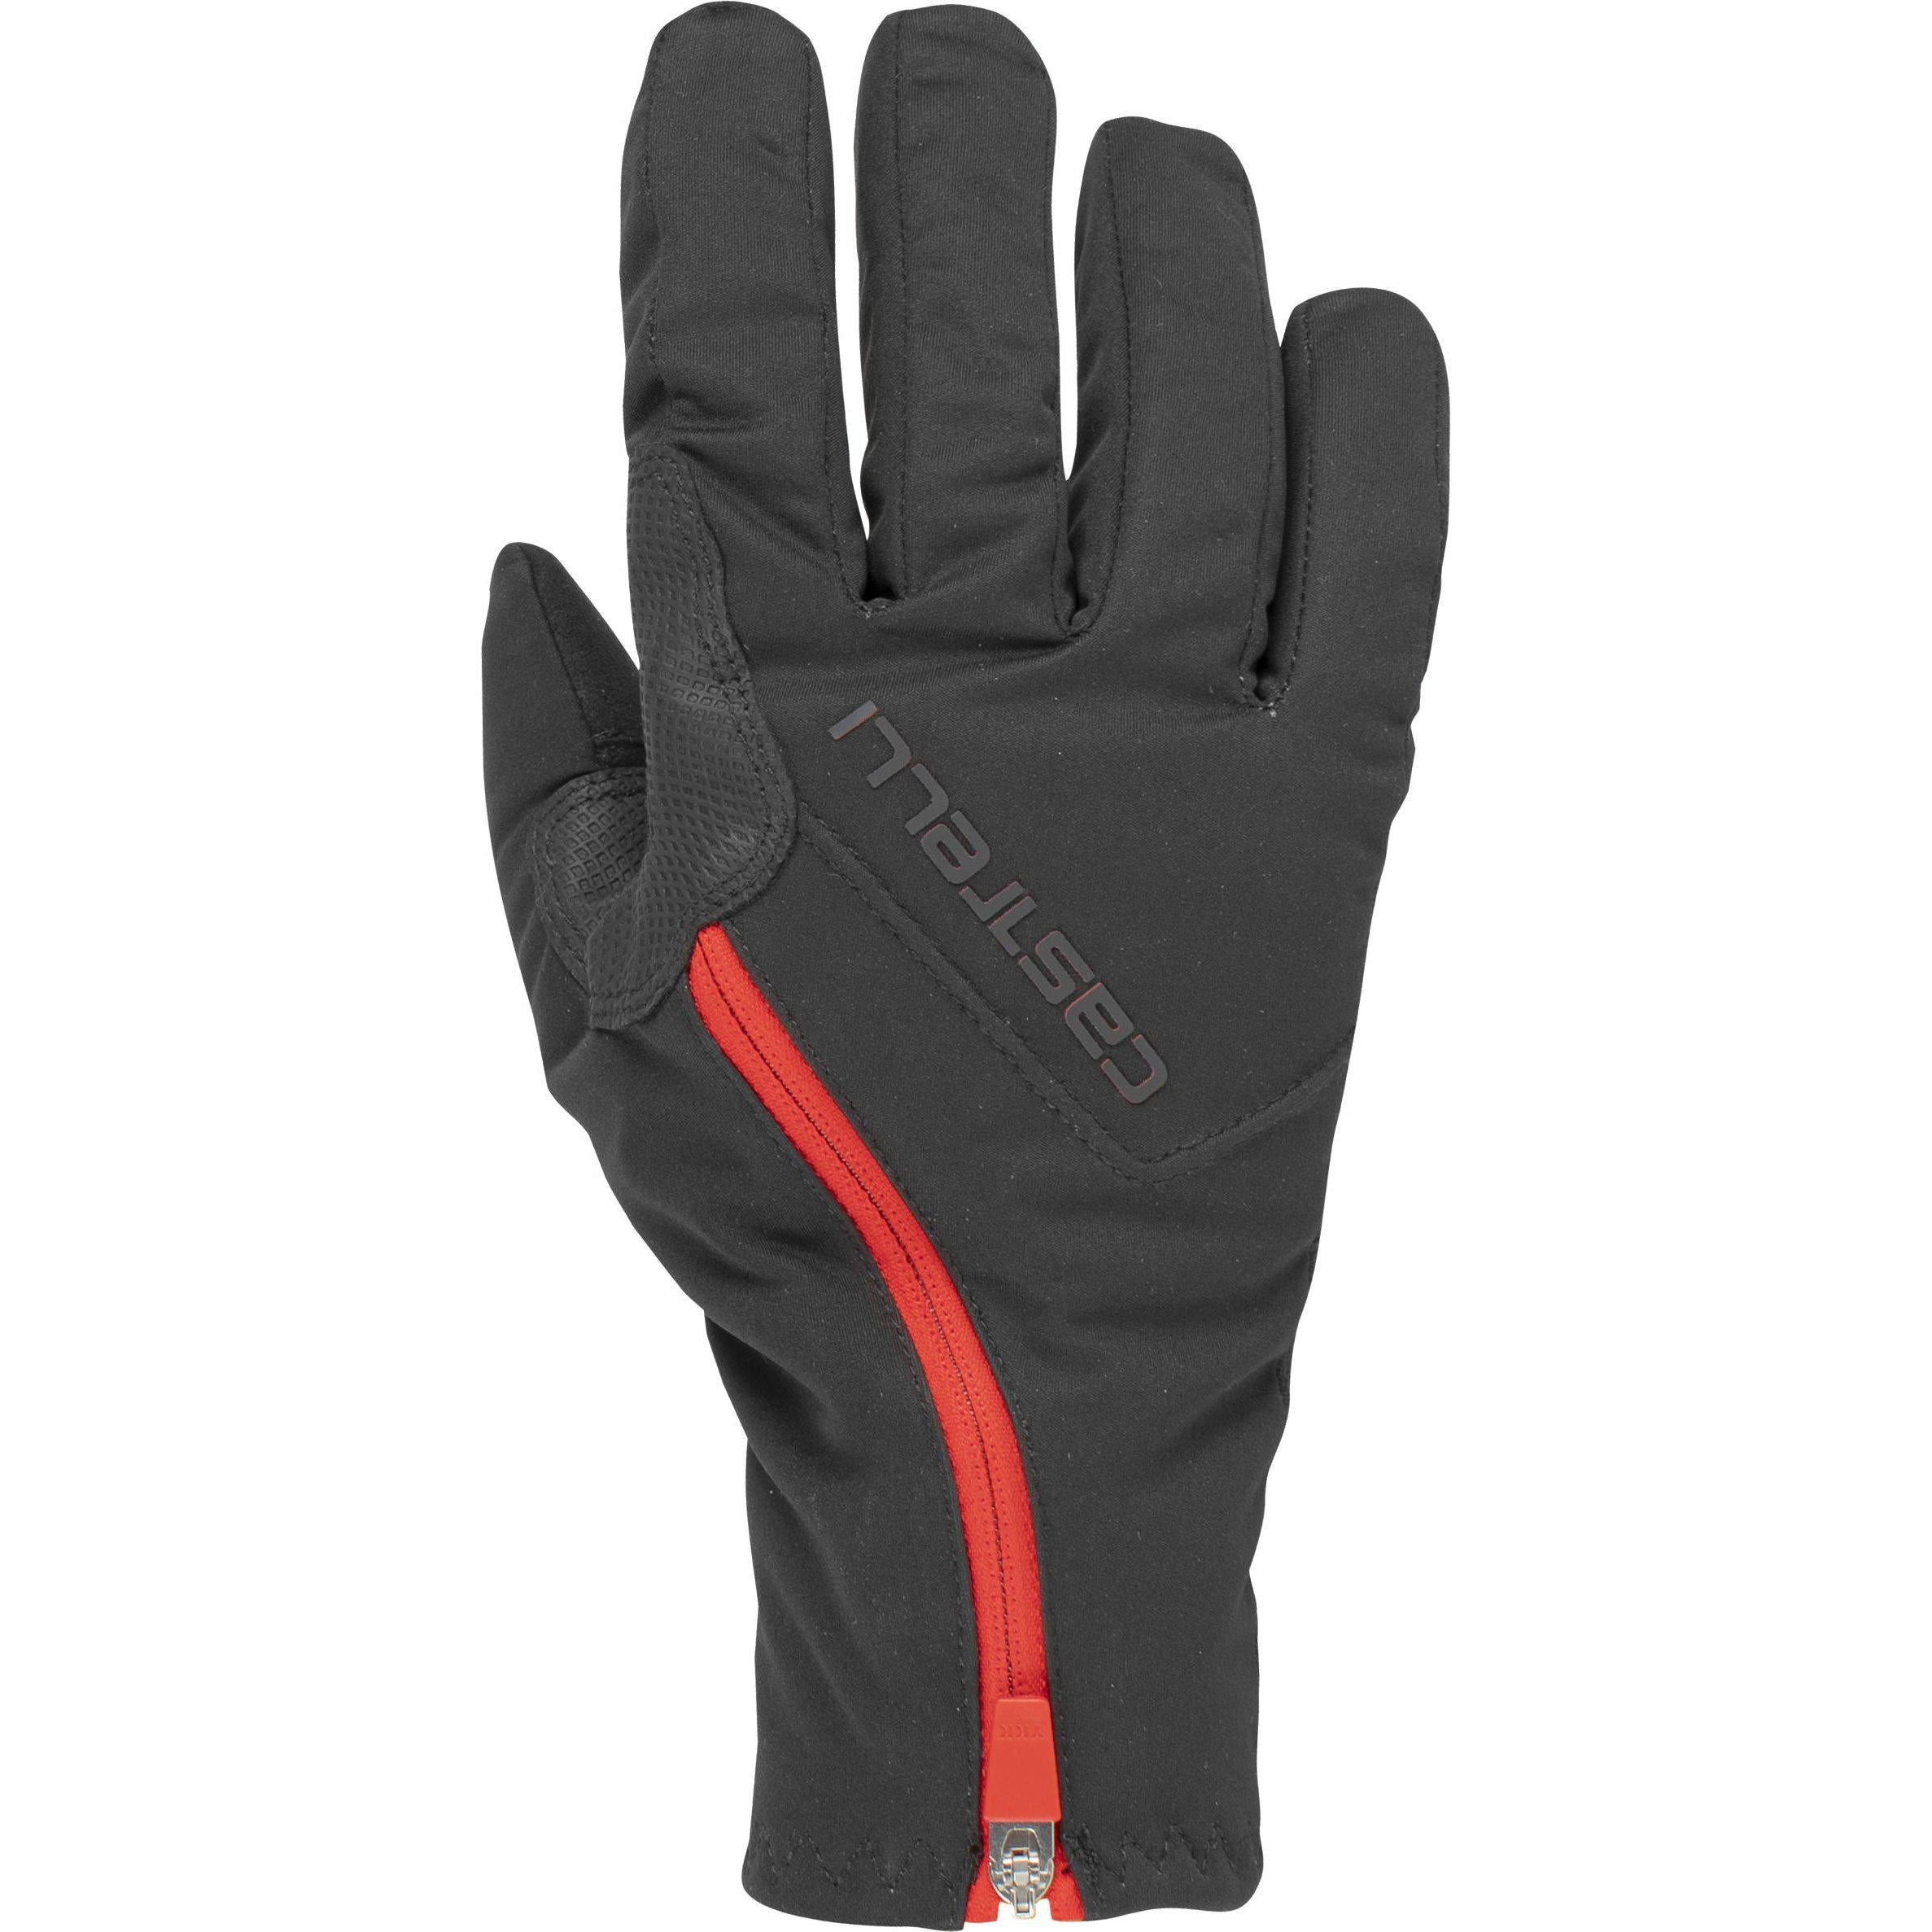 Castelli-Castelli Spettacolo RoS Women's Gloves-Black-XS-CS205680101-saddleback-elite-performance-cycling